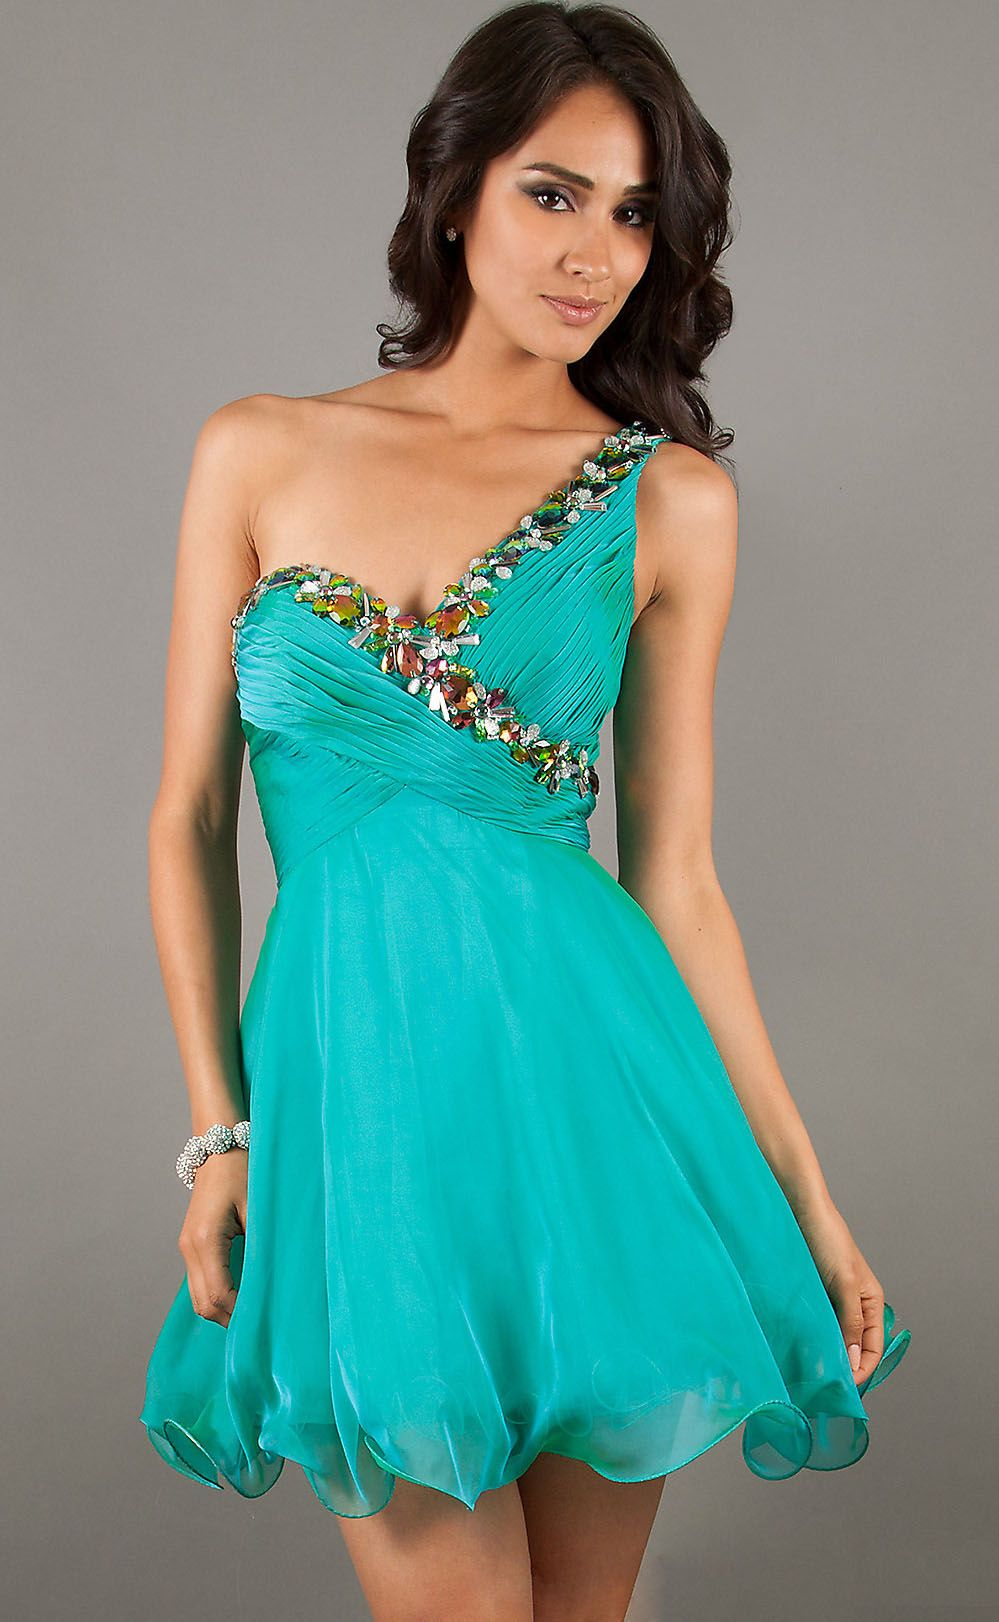 Teal Single Strap A-Line Short Dress With Glitzy Beading | Green ...